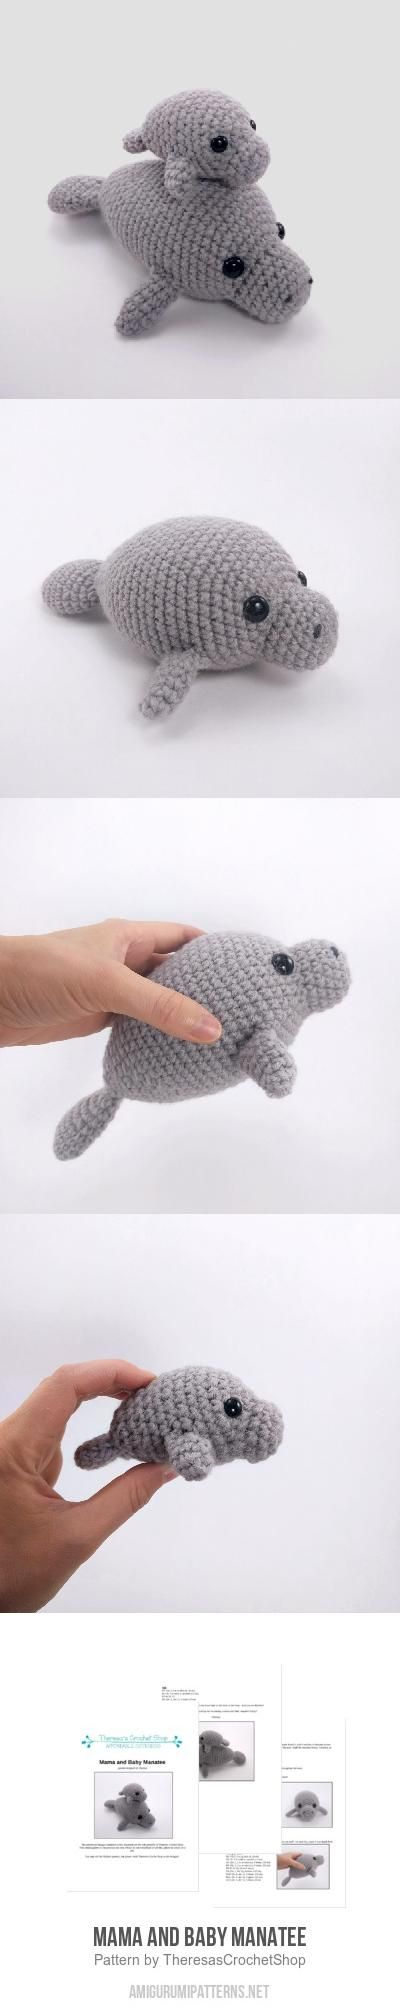 Amigurumi Manatee Pattern : 64 best images about Theresas Crochet Shop: Crochet ...